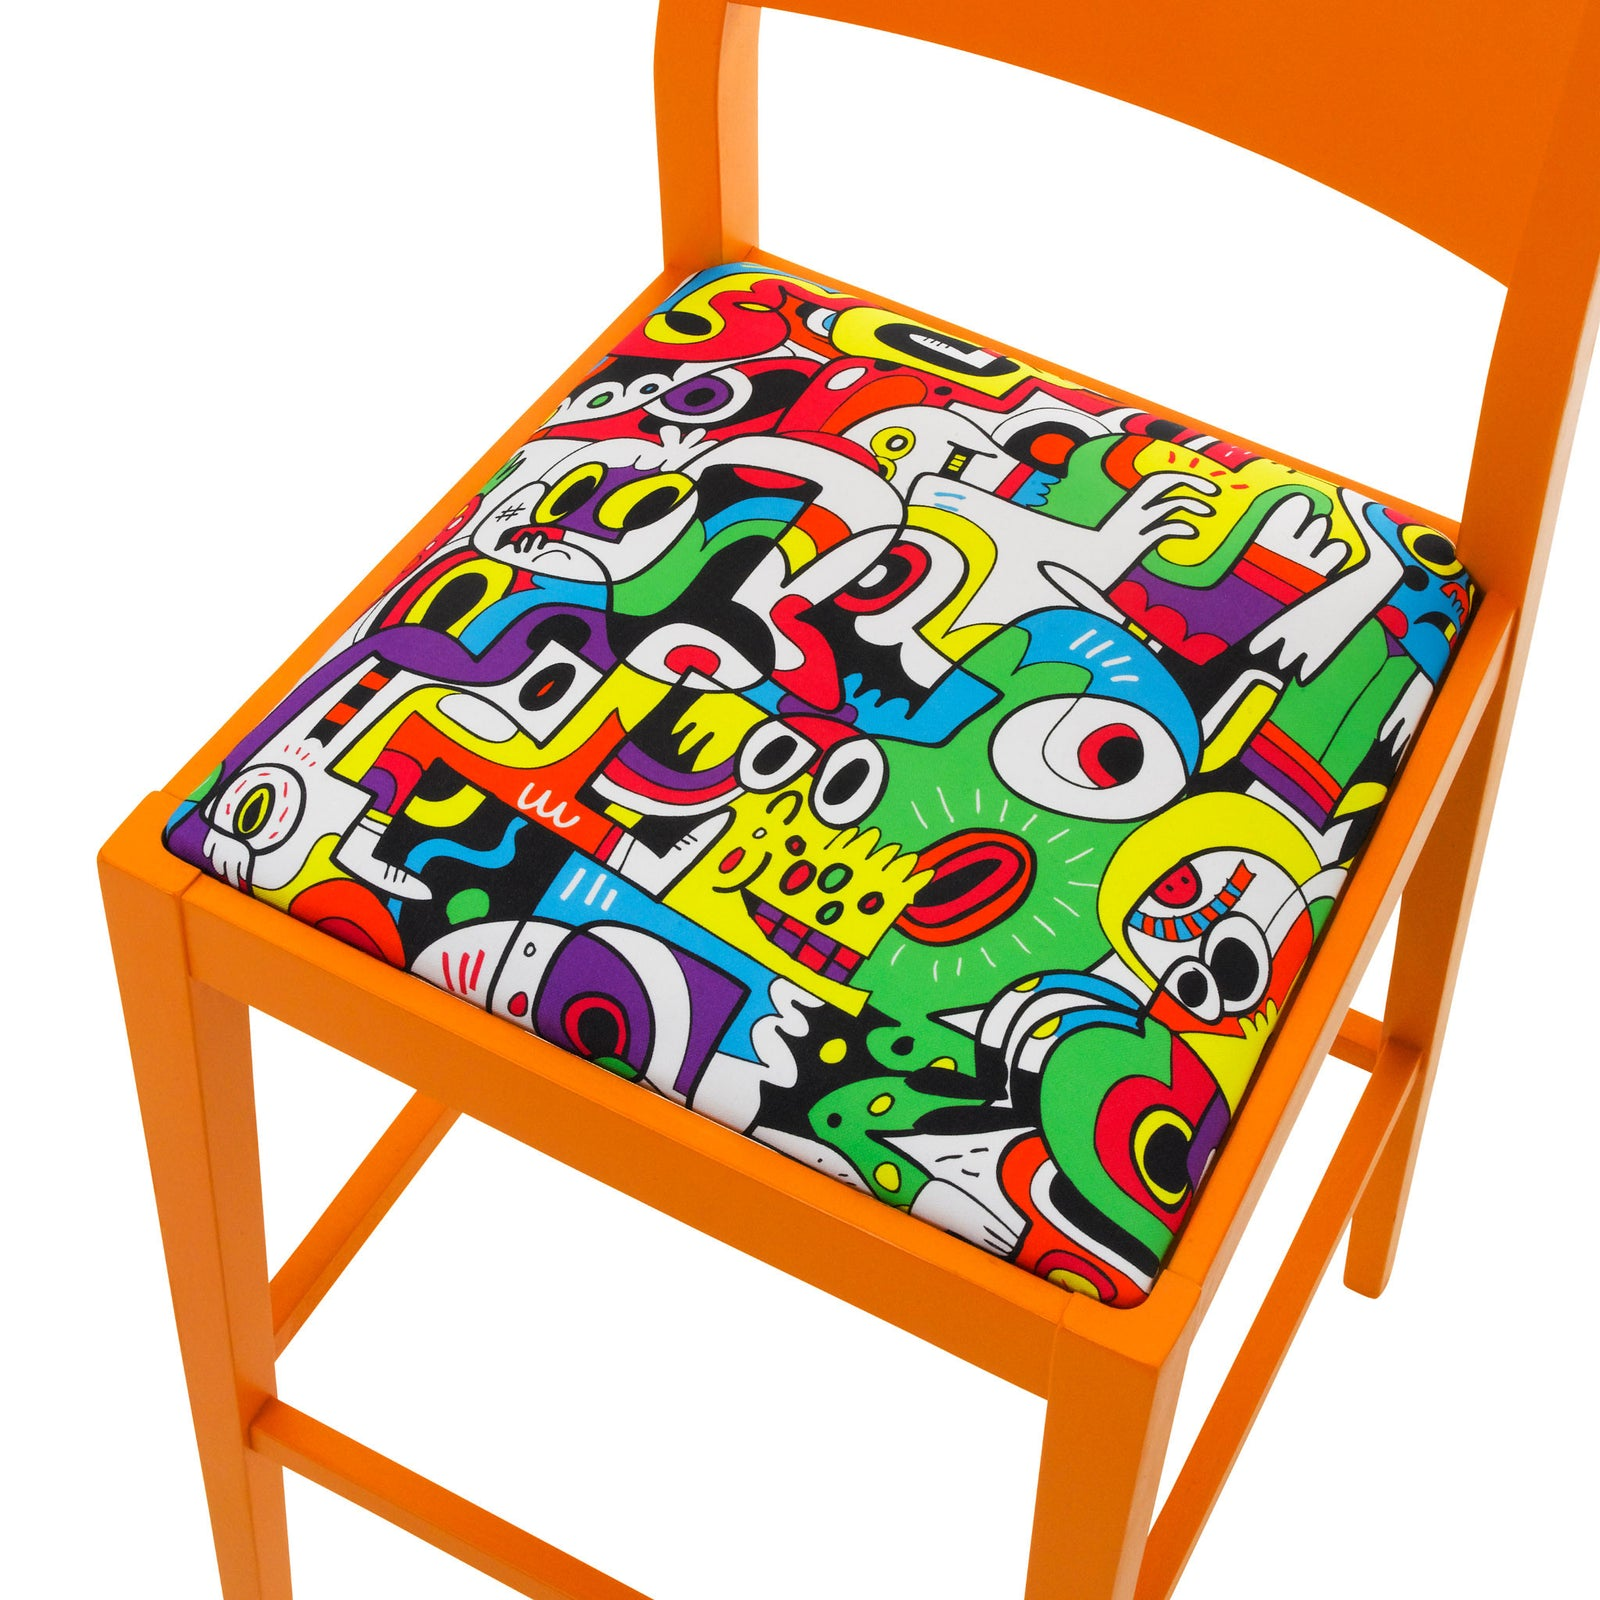 James Barista Bar stool upholstered in Frooty Tooty Tropical Fabric finished in Marigold Orange.